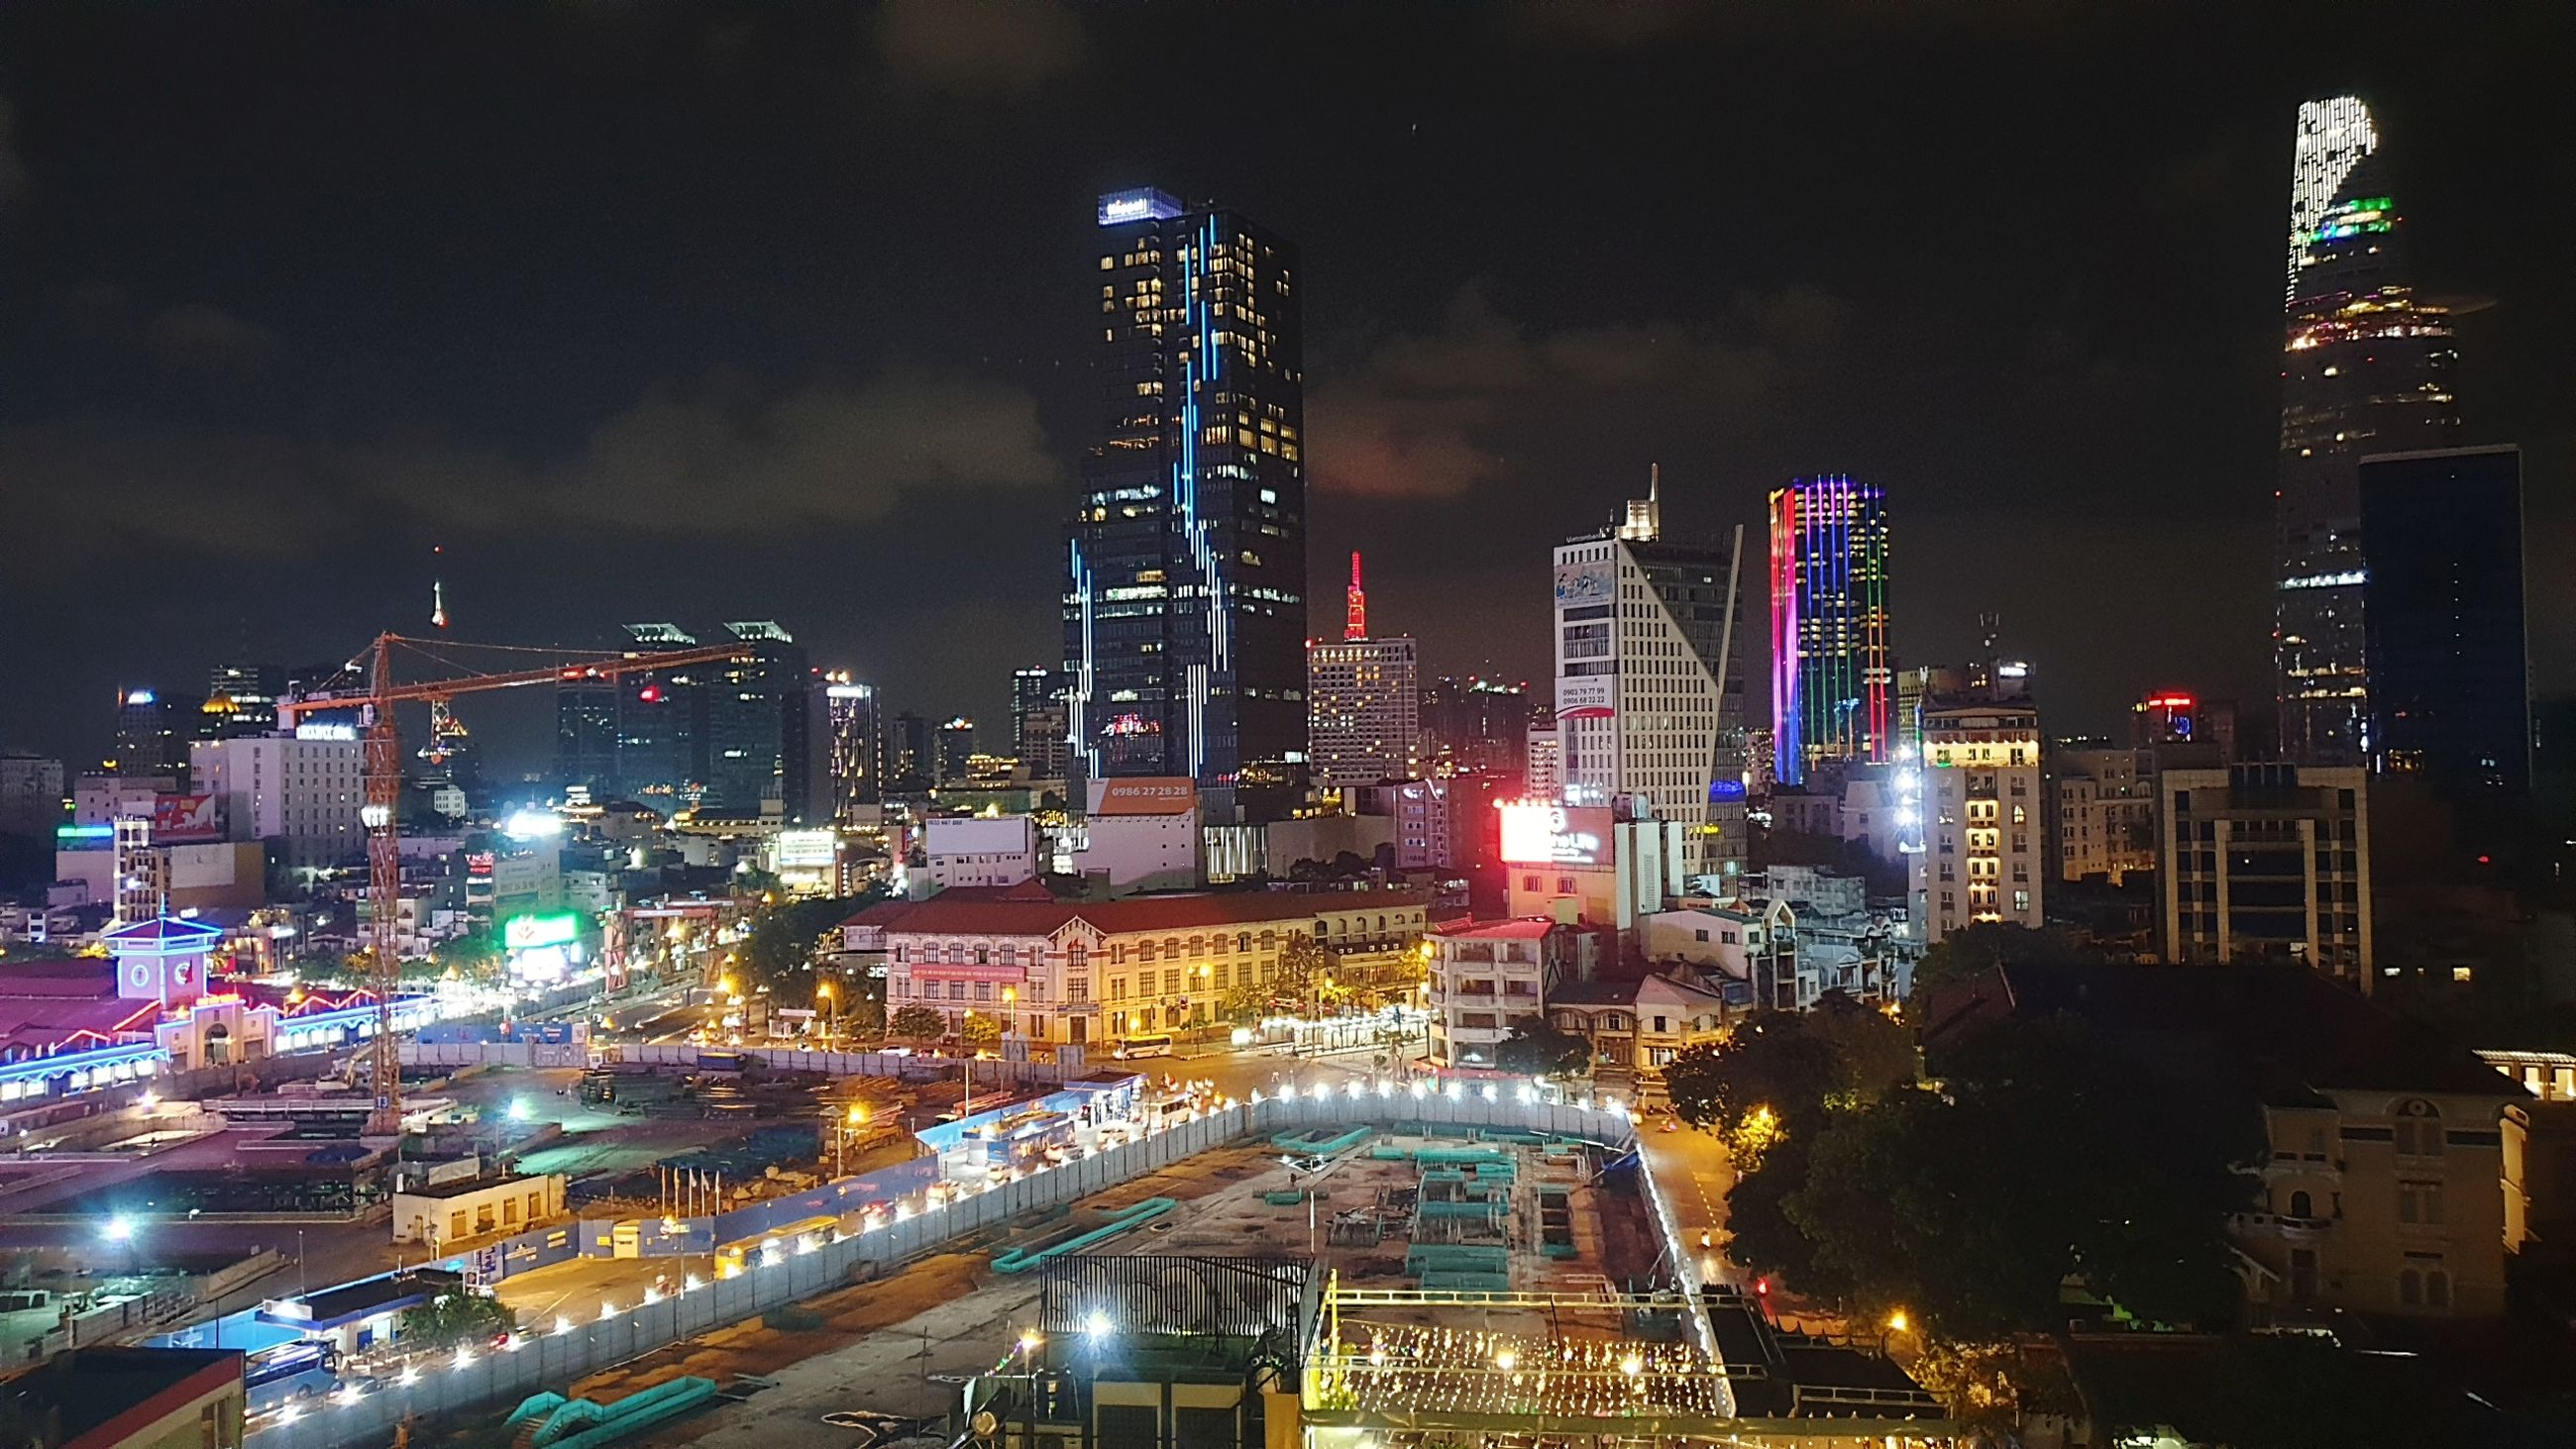 building exterior, illuminated, architecture, built structure, city, night, sky, building, tall - high, office building exterior, modern, skyscraper, cloud - sky, cityscape, tower, nature, no people, office, residential district, outdoors, financial district